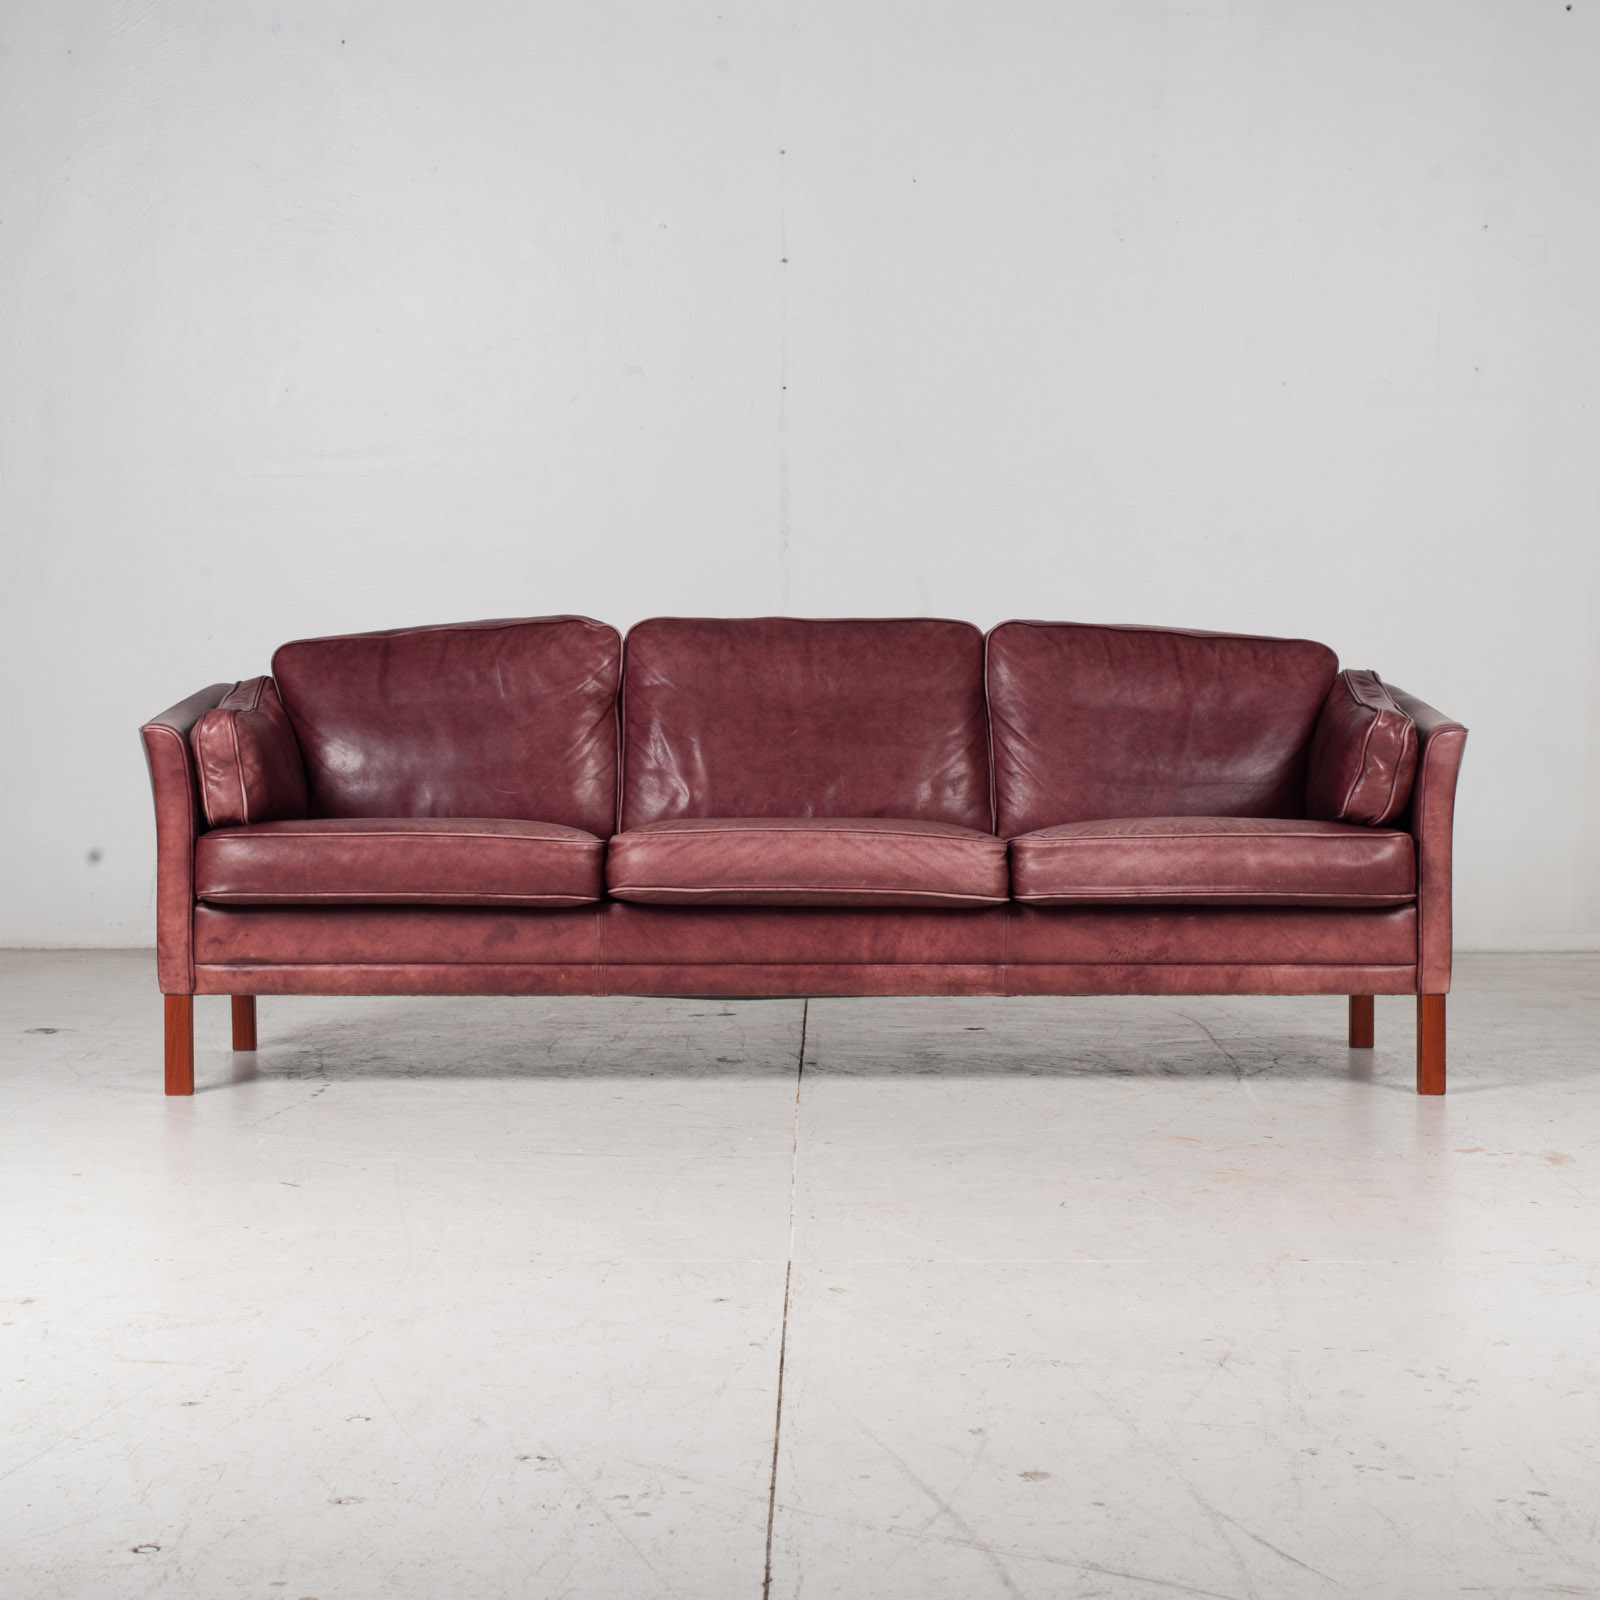 3 Seat Sofa By Mogens Hansen In Red Leather, 1960s, Denmark 1